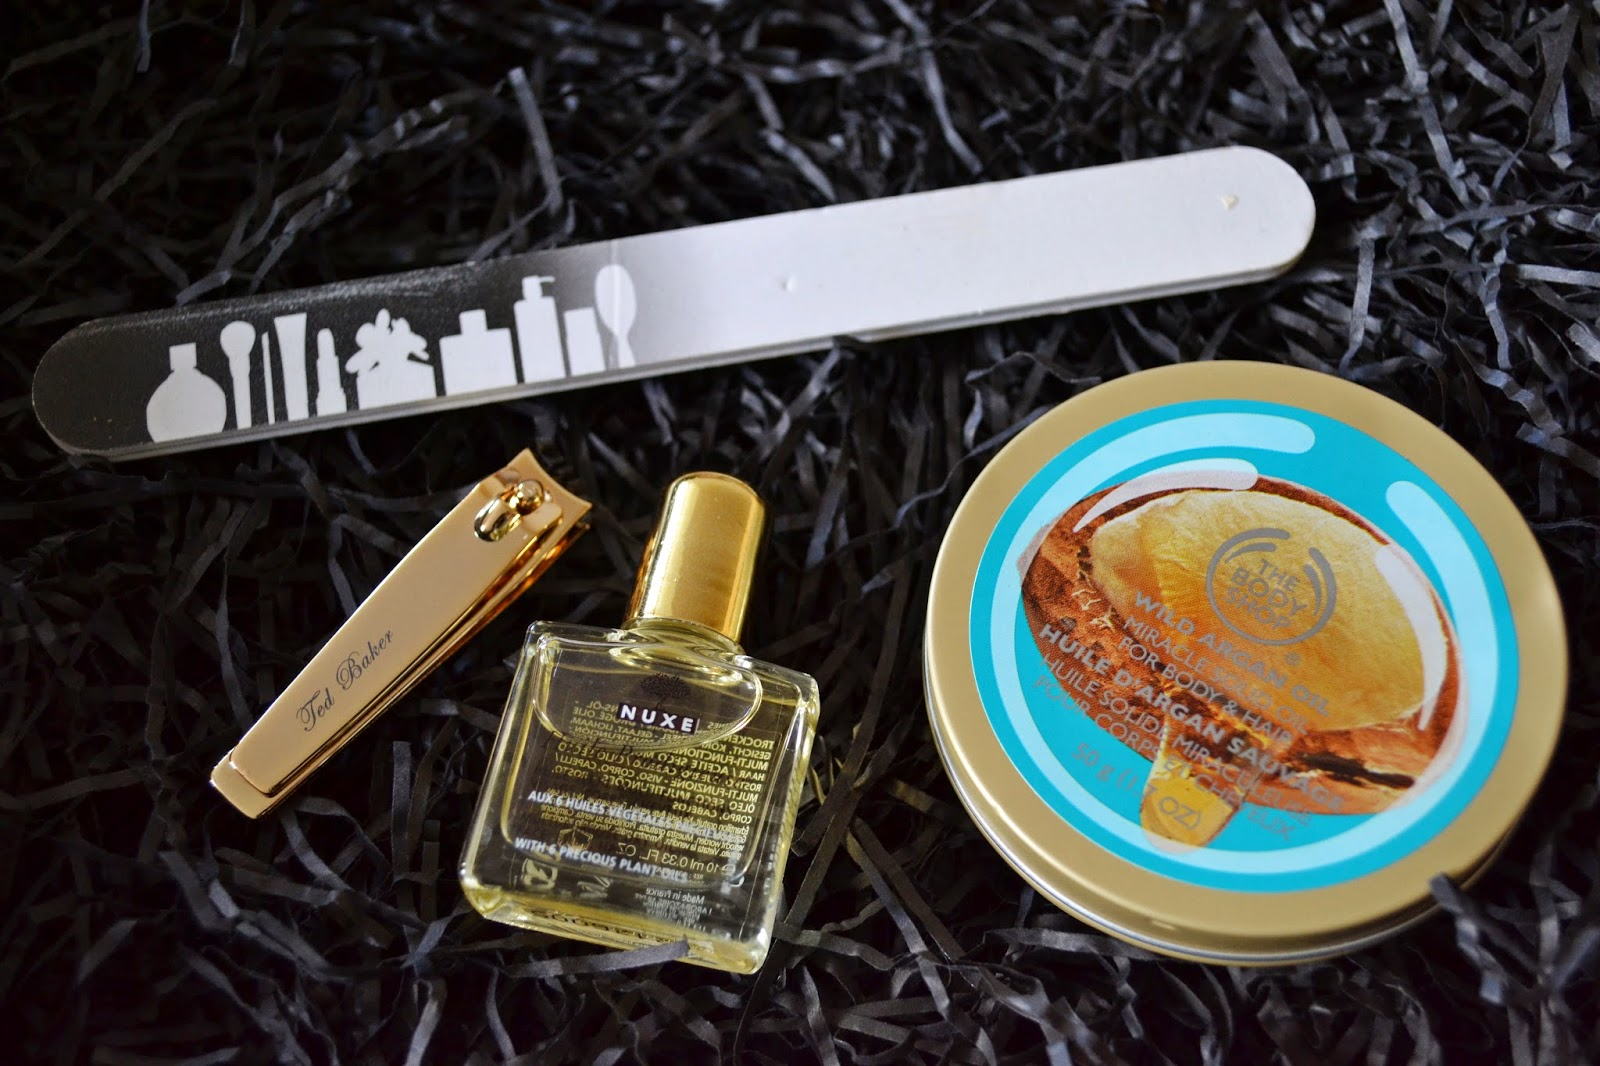 Beauty Tools ft. The Body Shop Wild Argan Miracle Solid Oil, Nuxe Multi Usage Dry Oil, Ted Baker Nail Clipper - Aspiring Londoner